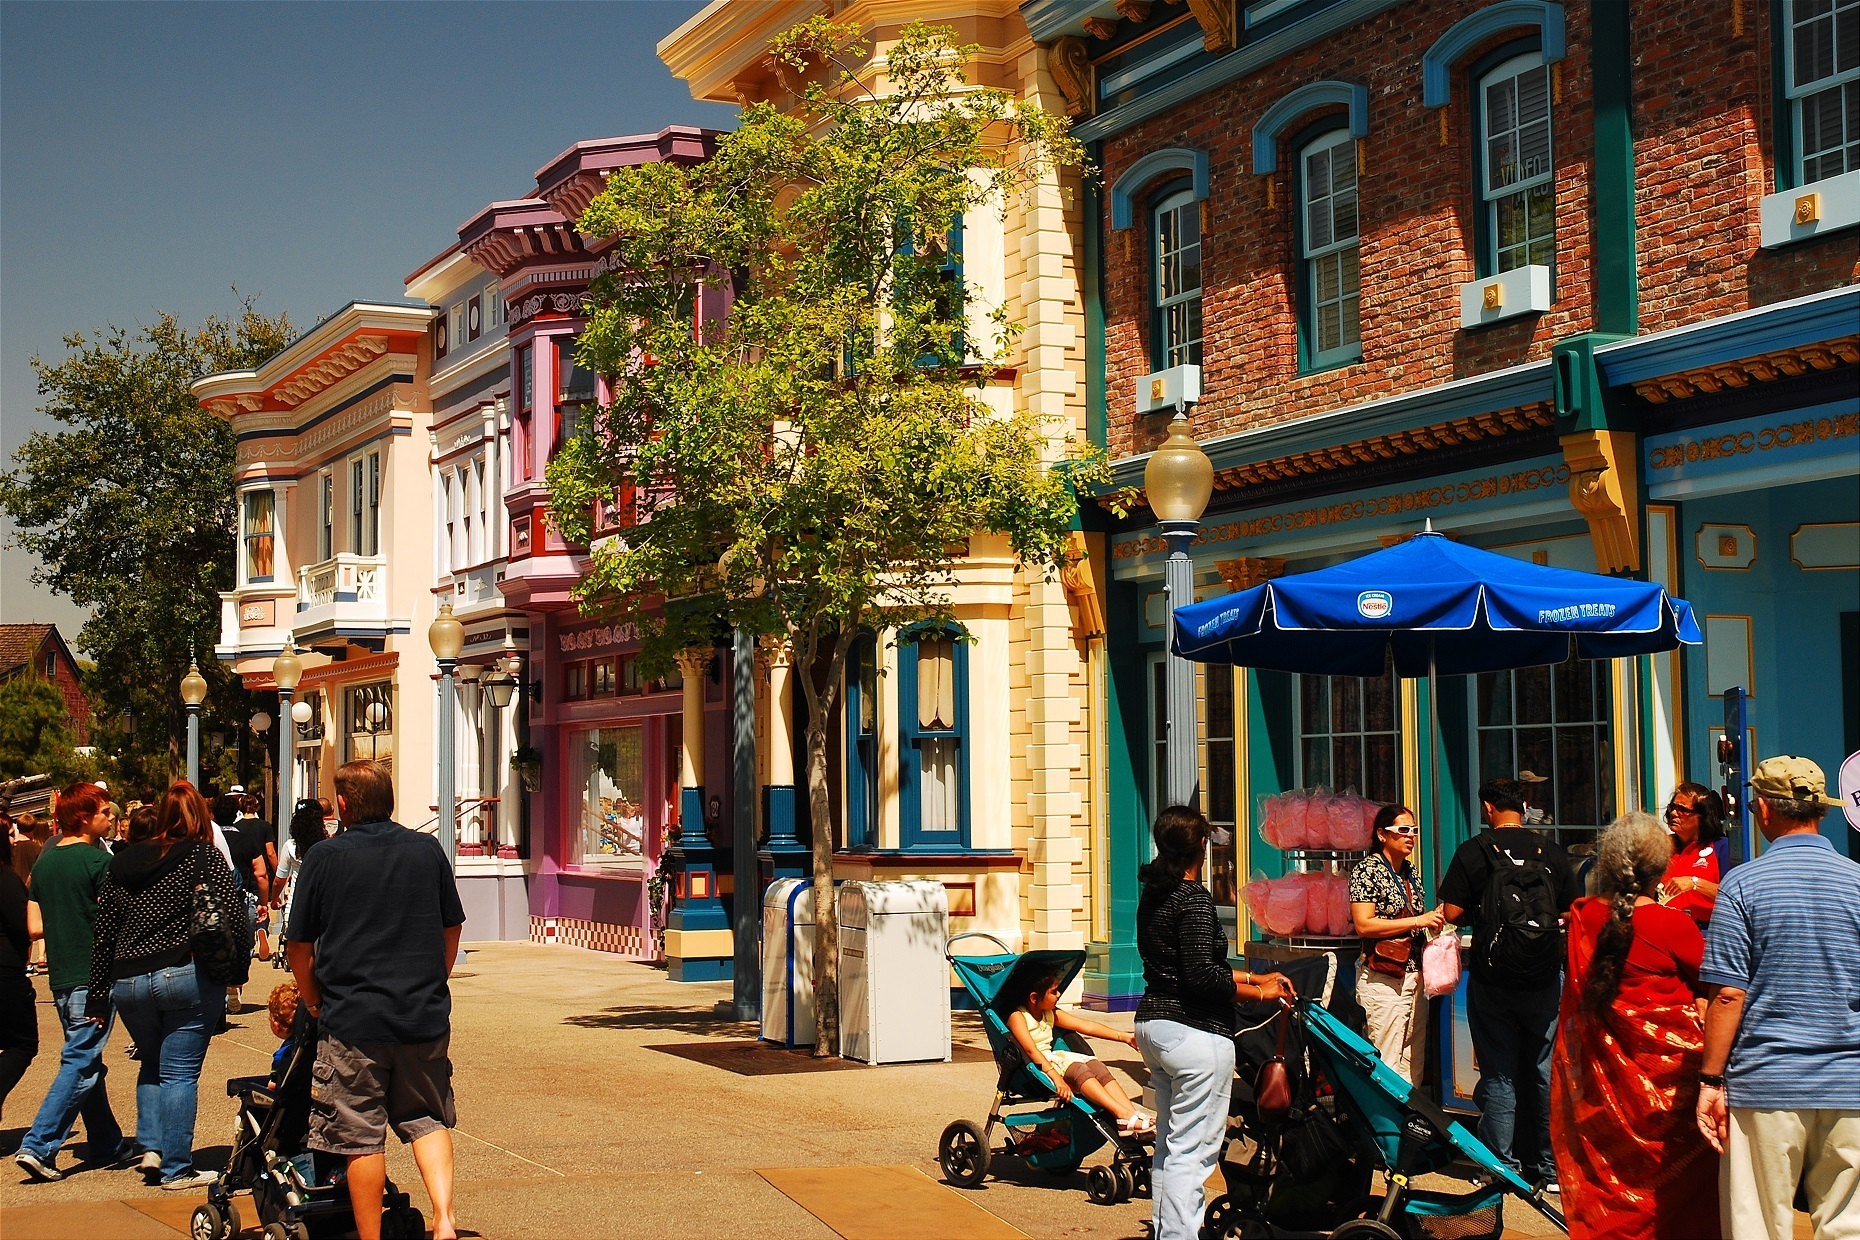 Disney main street usa in California